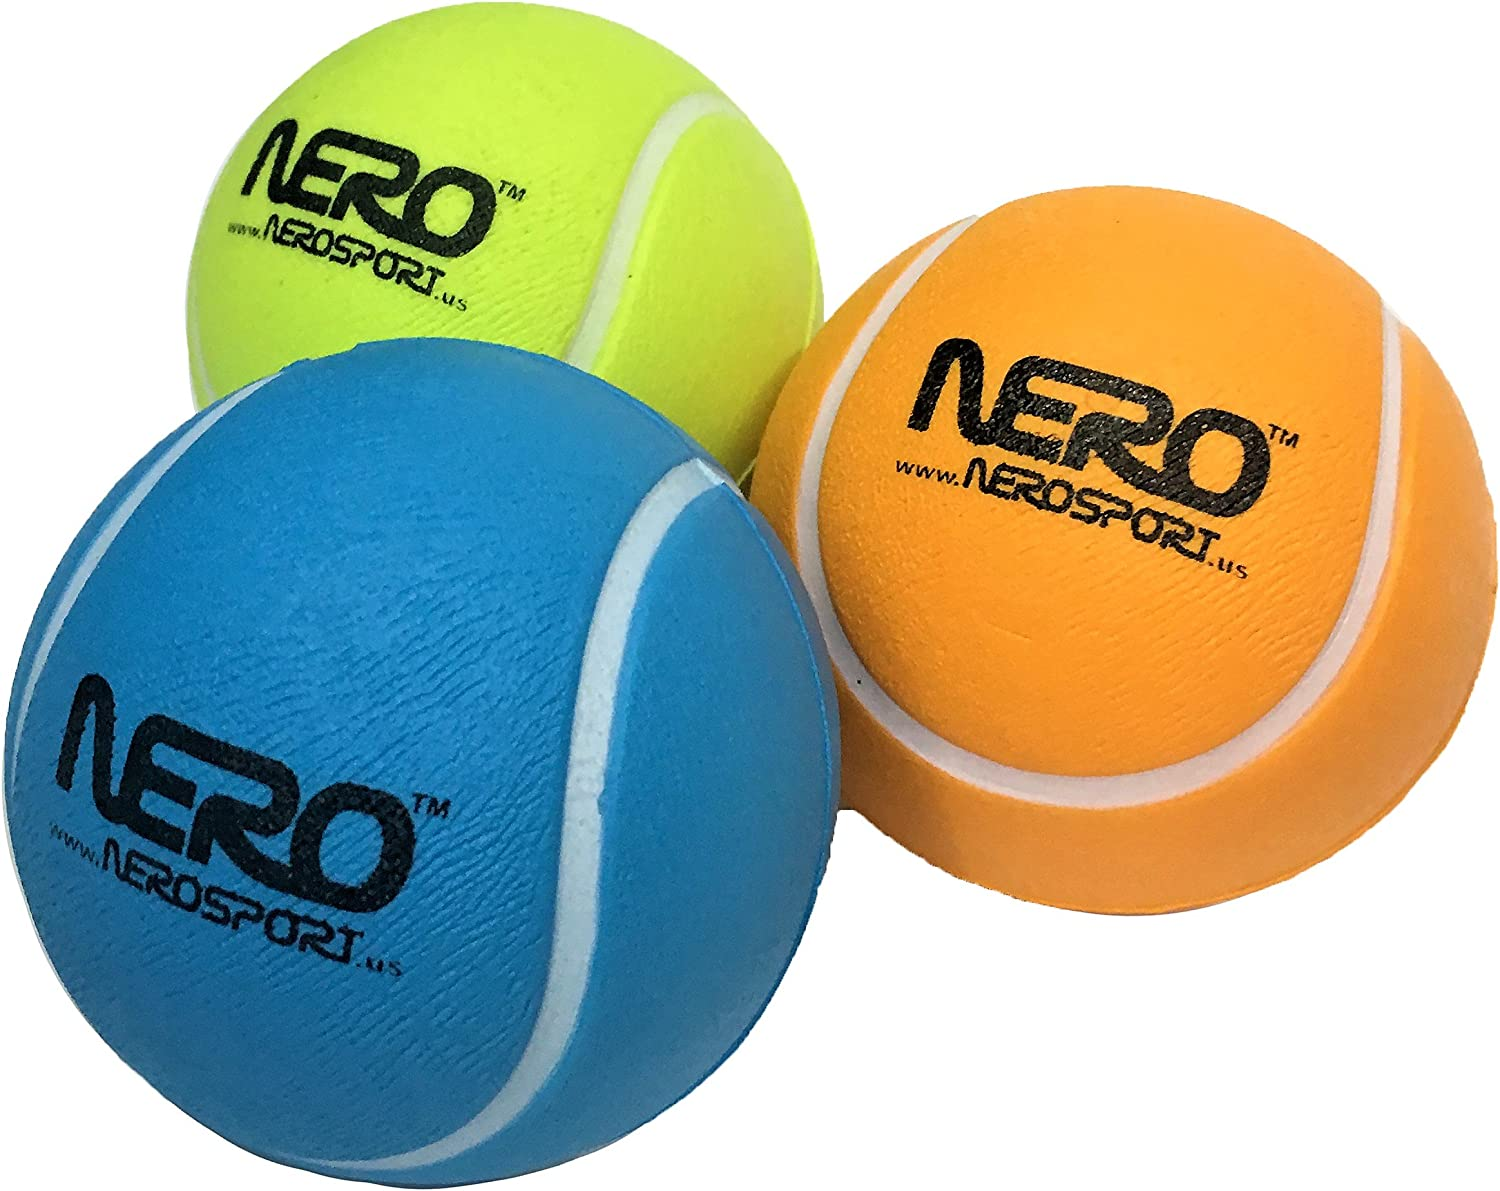 Nero NS-RS High Bounce Rubber Toy Tennis Ball 2.5 inch Great for The Streets Park Playground Back Yard Boys /& Girls Love it Agility Ball Bulk Price Birthdays